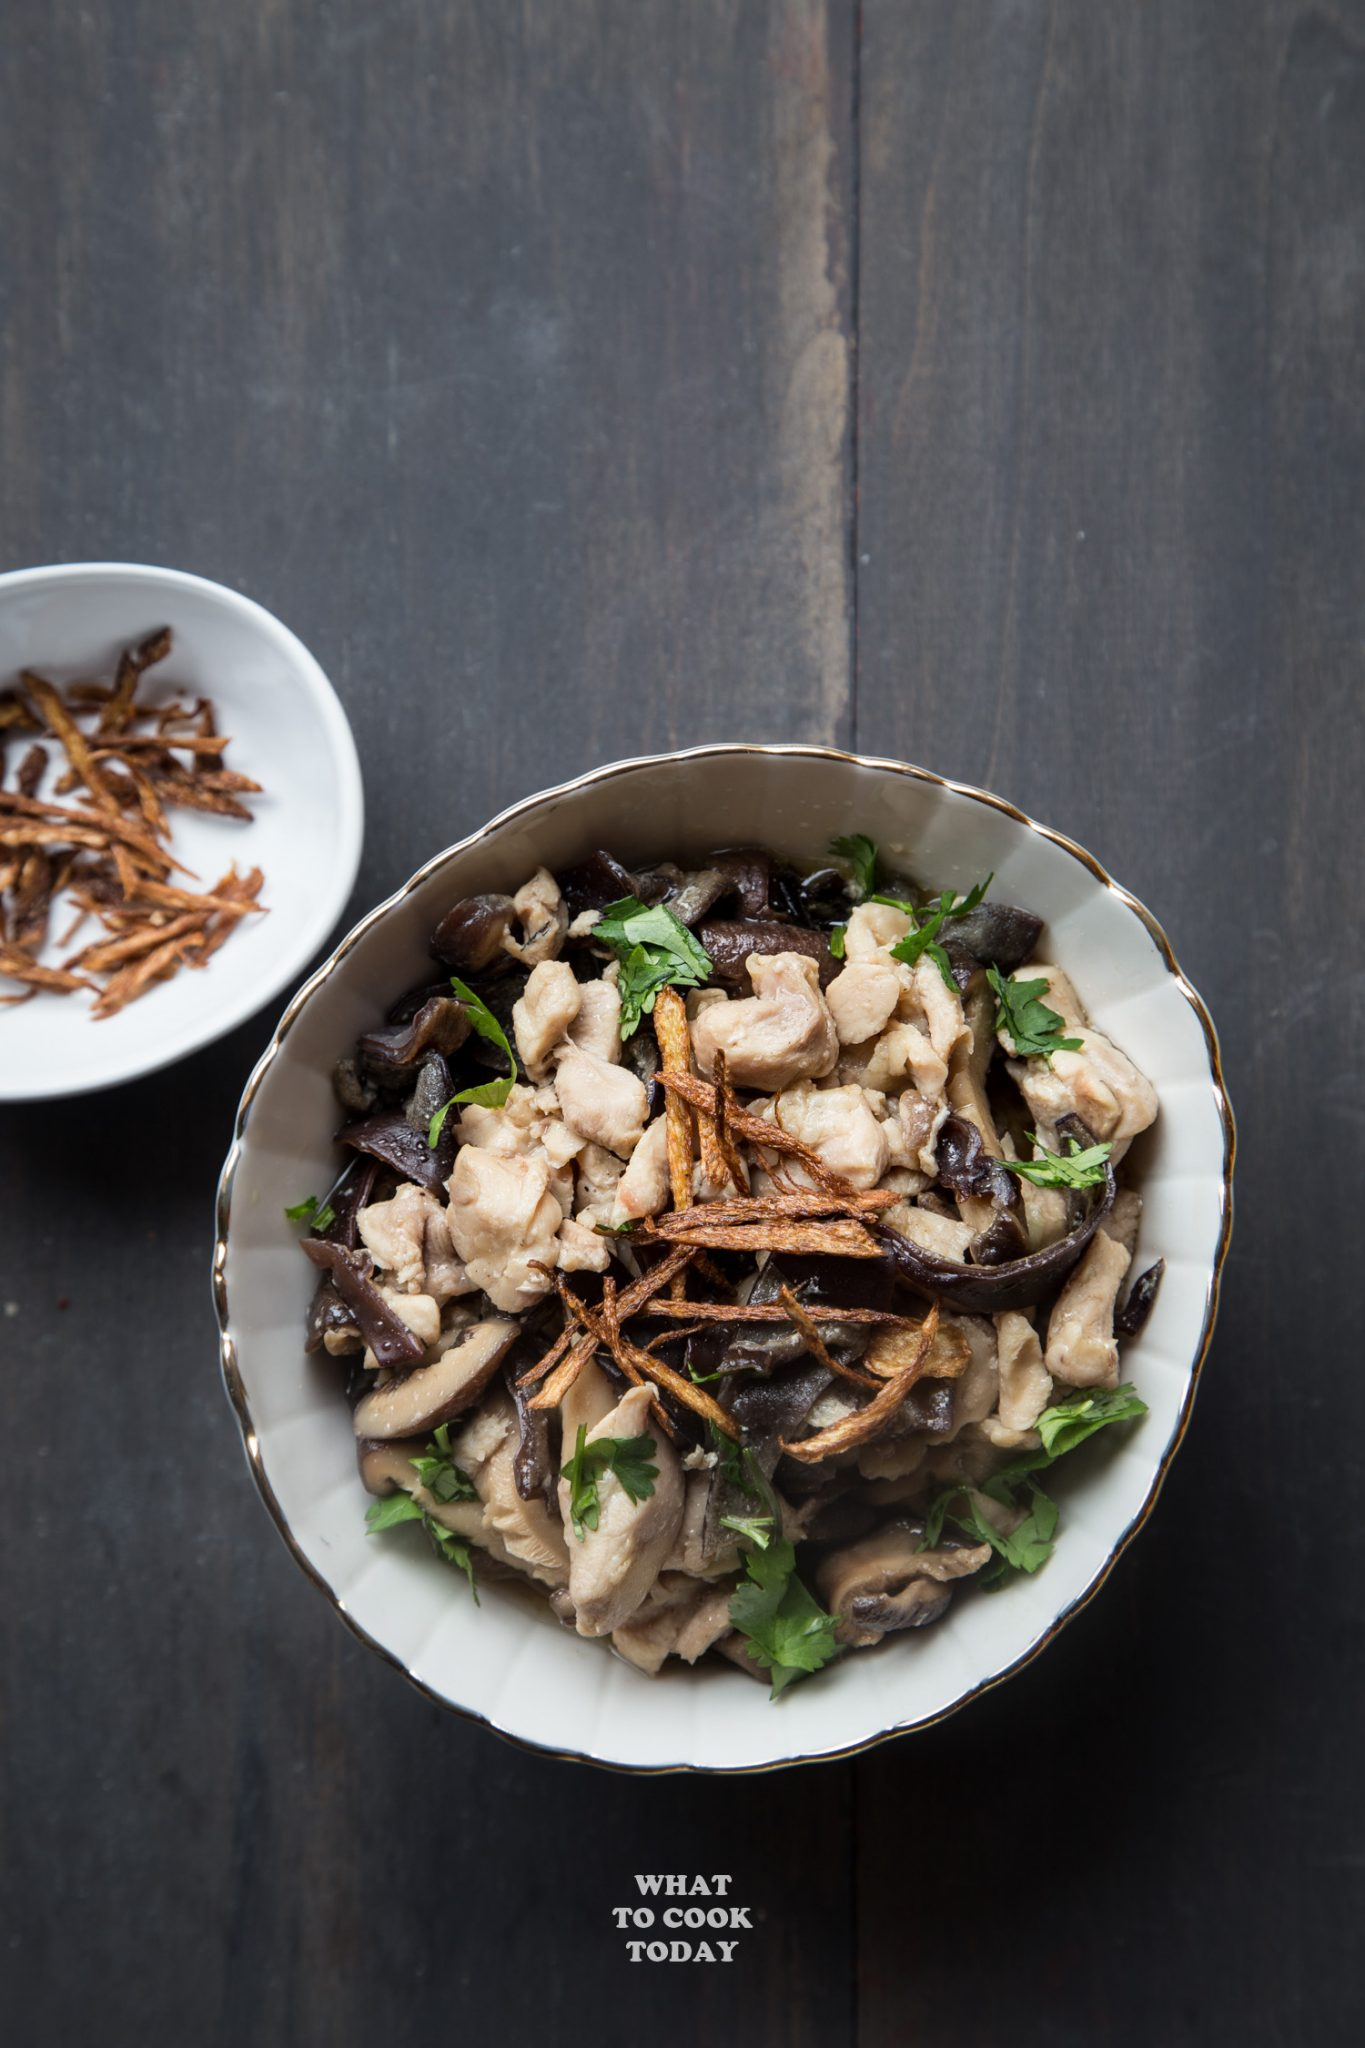 Chicken Mushrooms with DOM Benedictine #chicken #Mushroom #dombenedictine #easyrecipe #confinement